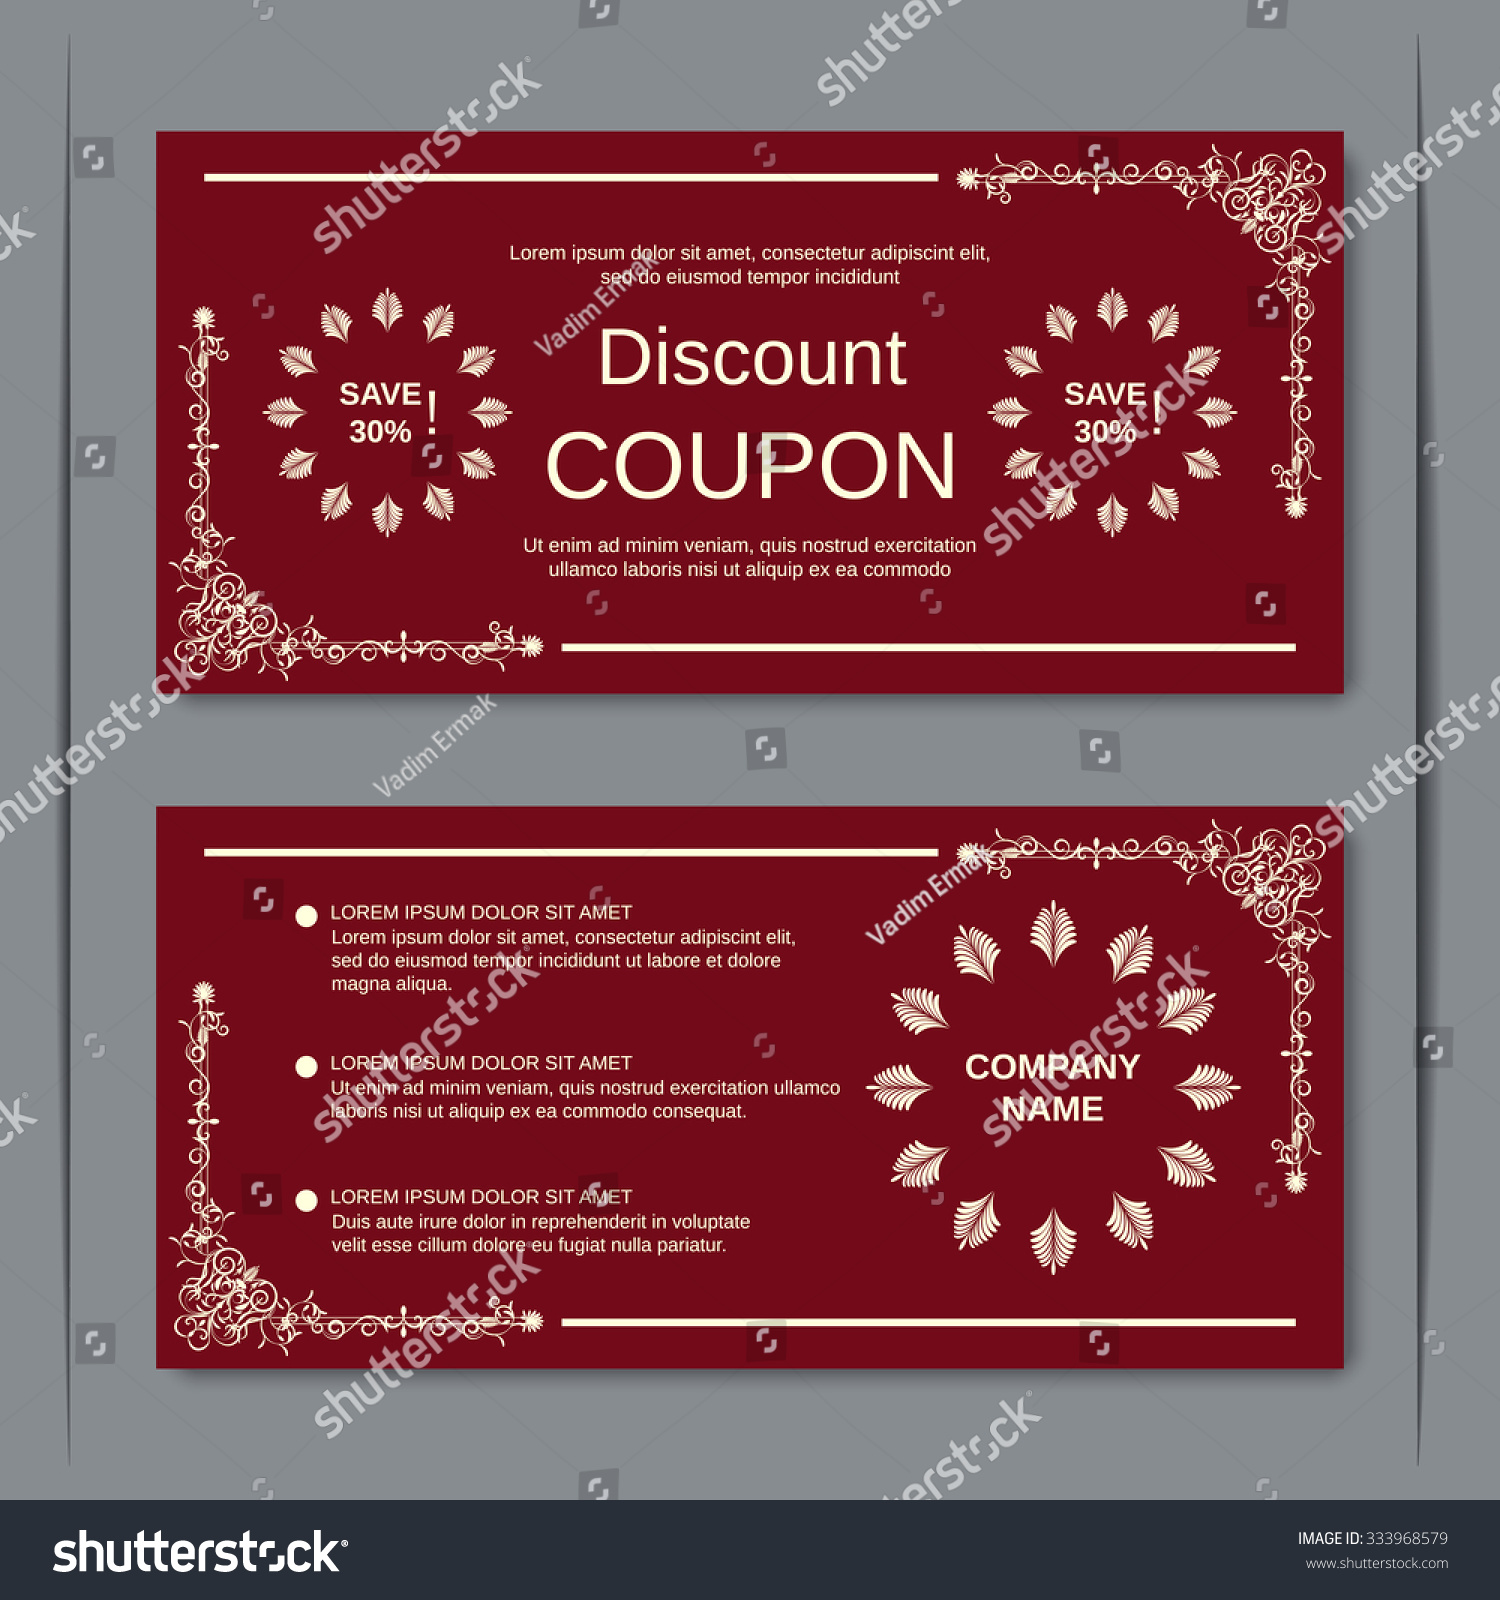 discount coupon gift voucher gift certificate stock vector discount coupon gift voucher gift certificate invitation card label sticker design